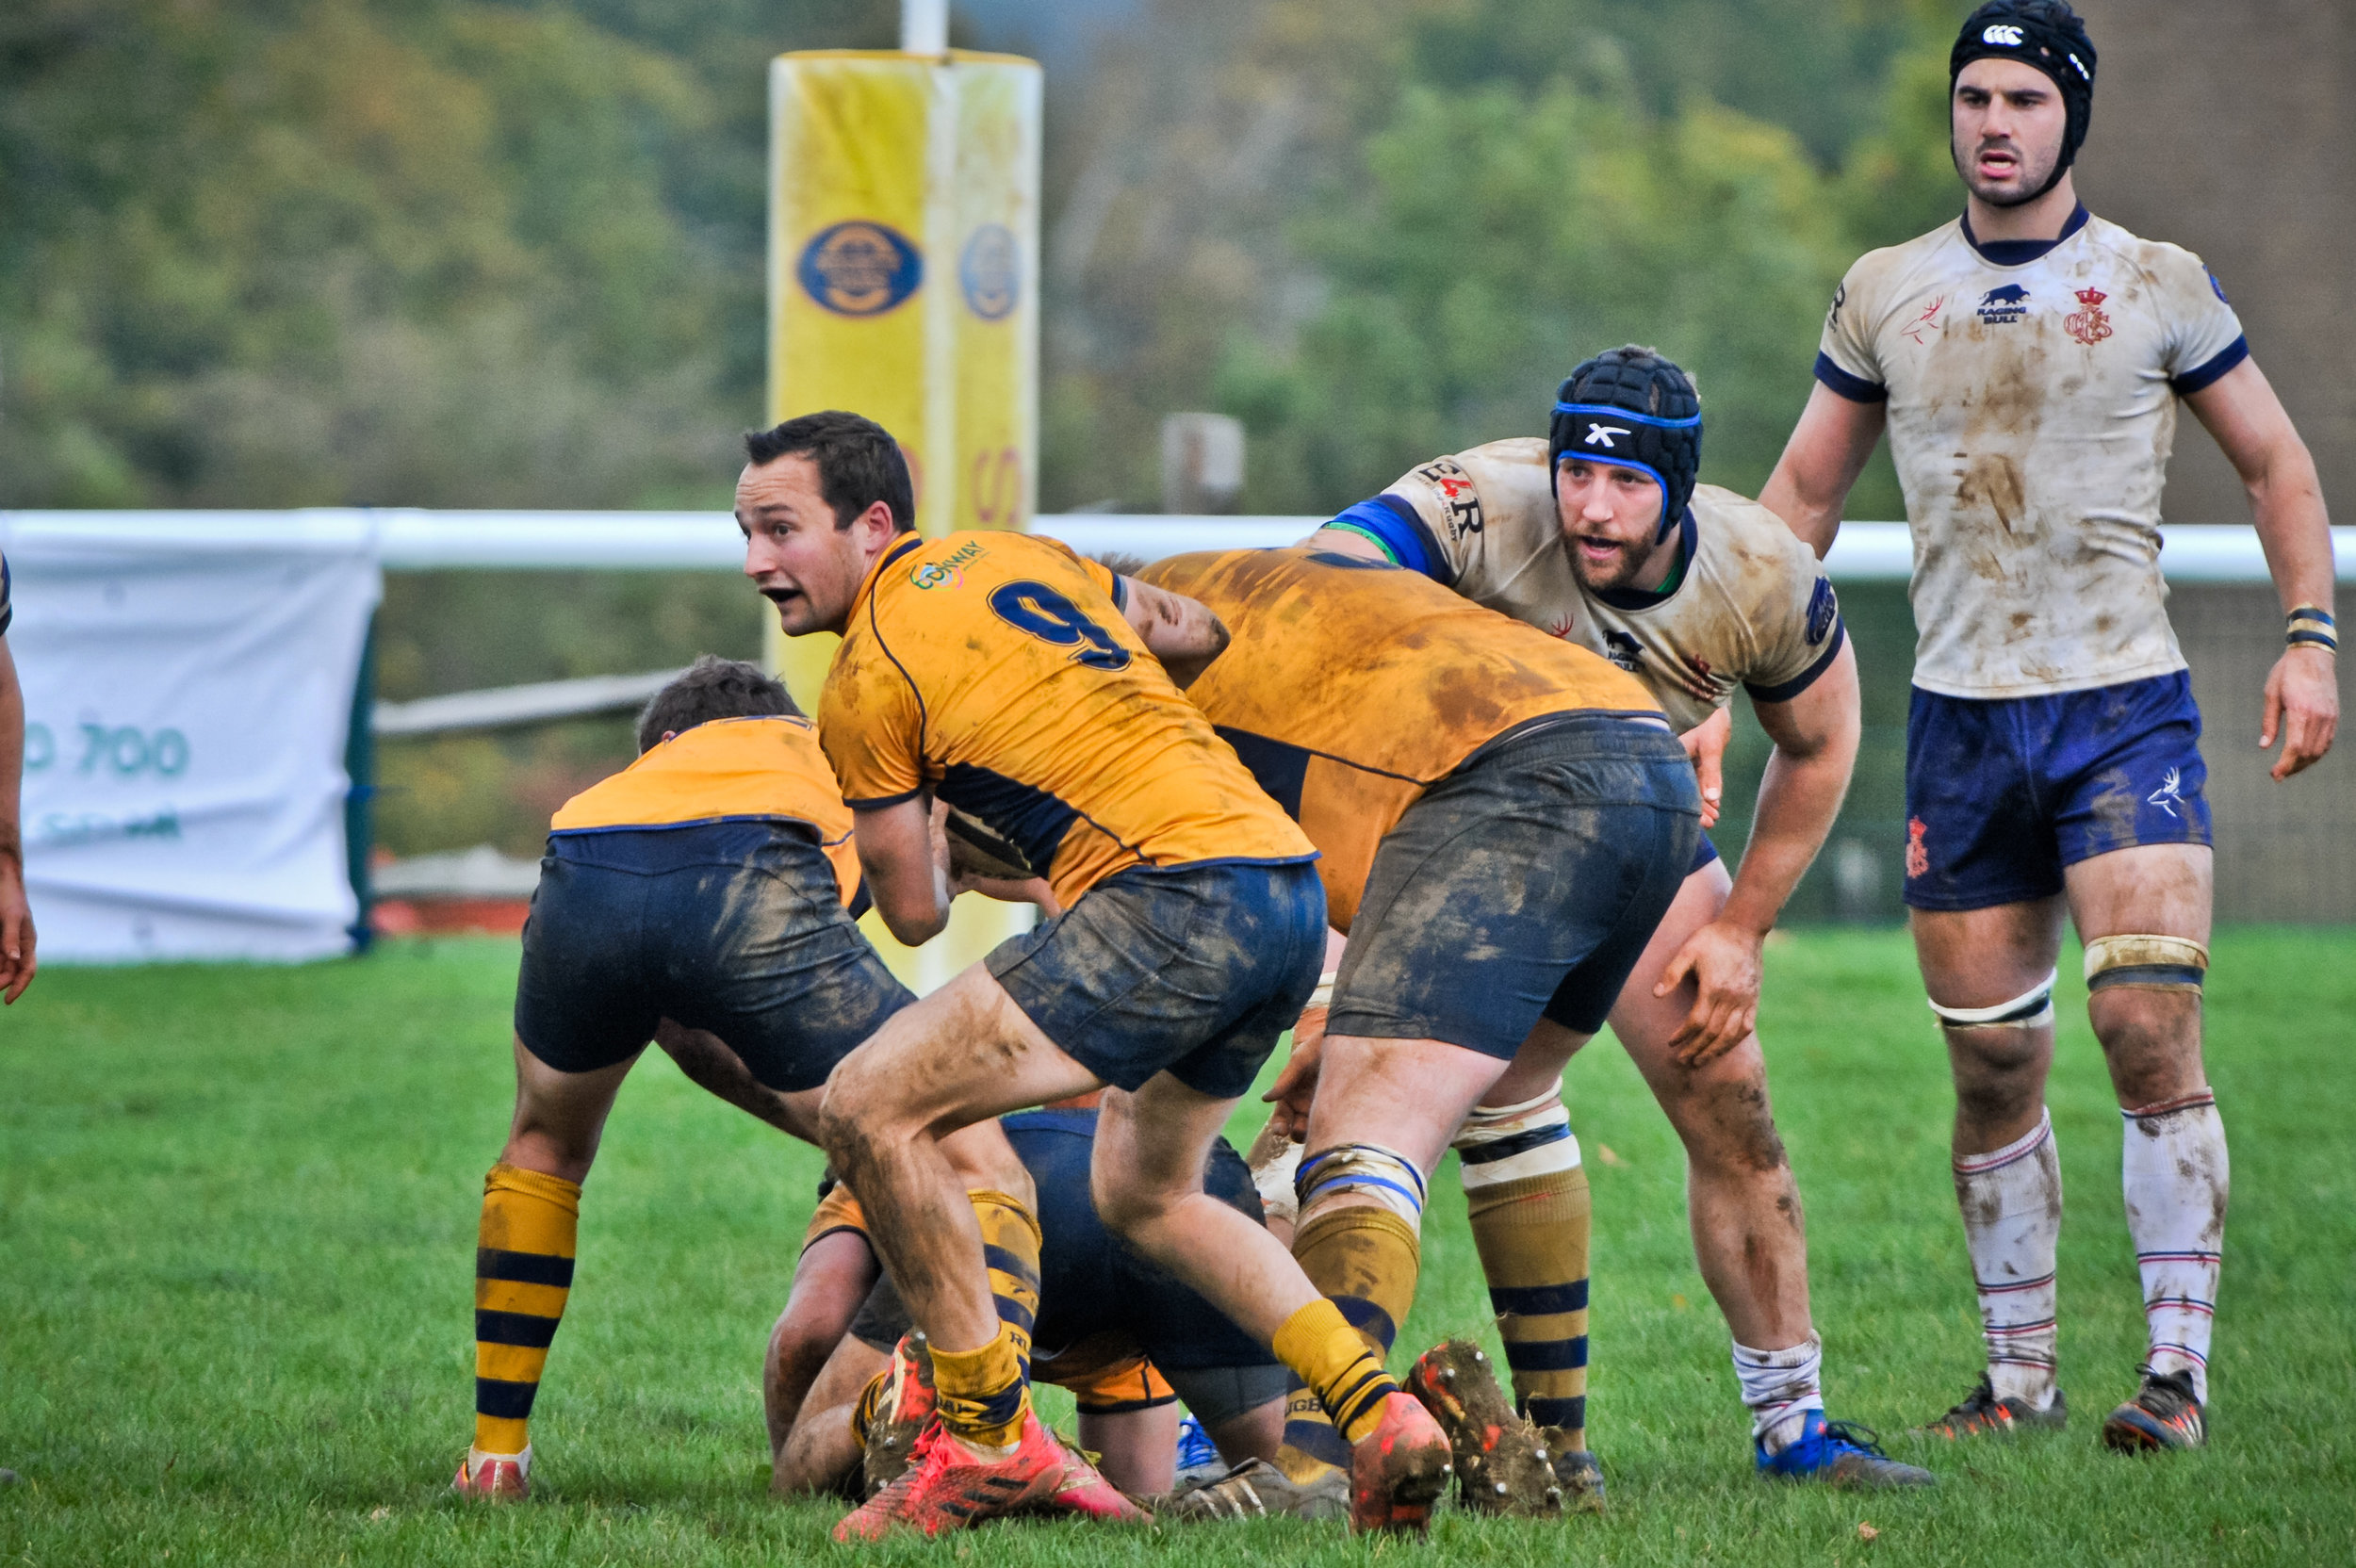 SEVENOAKS RUGBY V CS RUGBY 1863 21 OCT 2017 Photo credit: Dave Purday